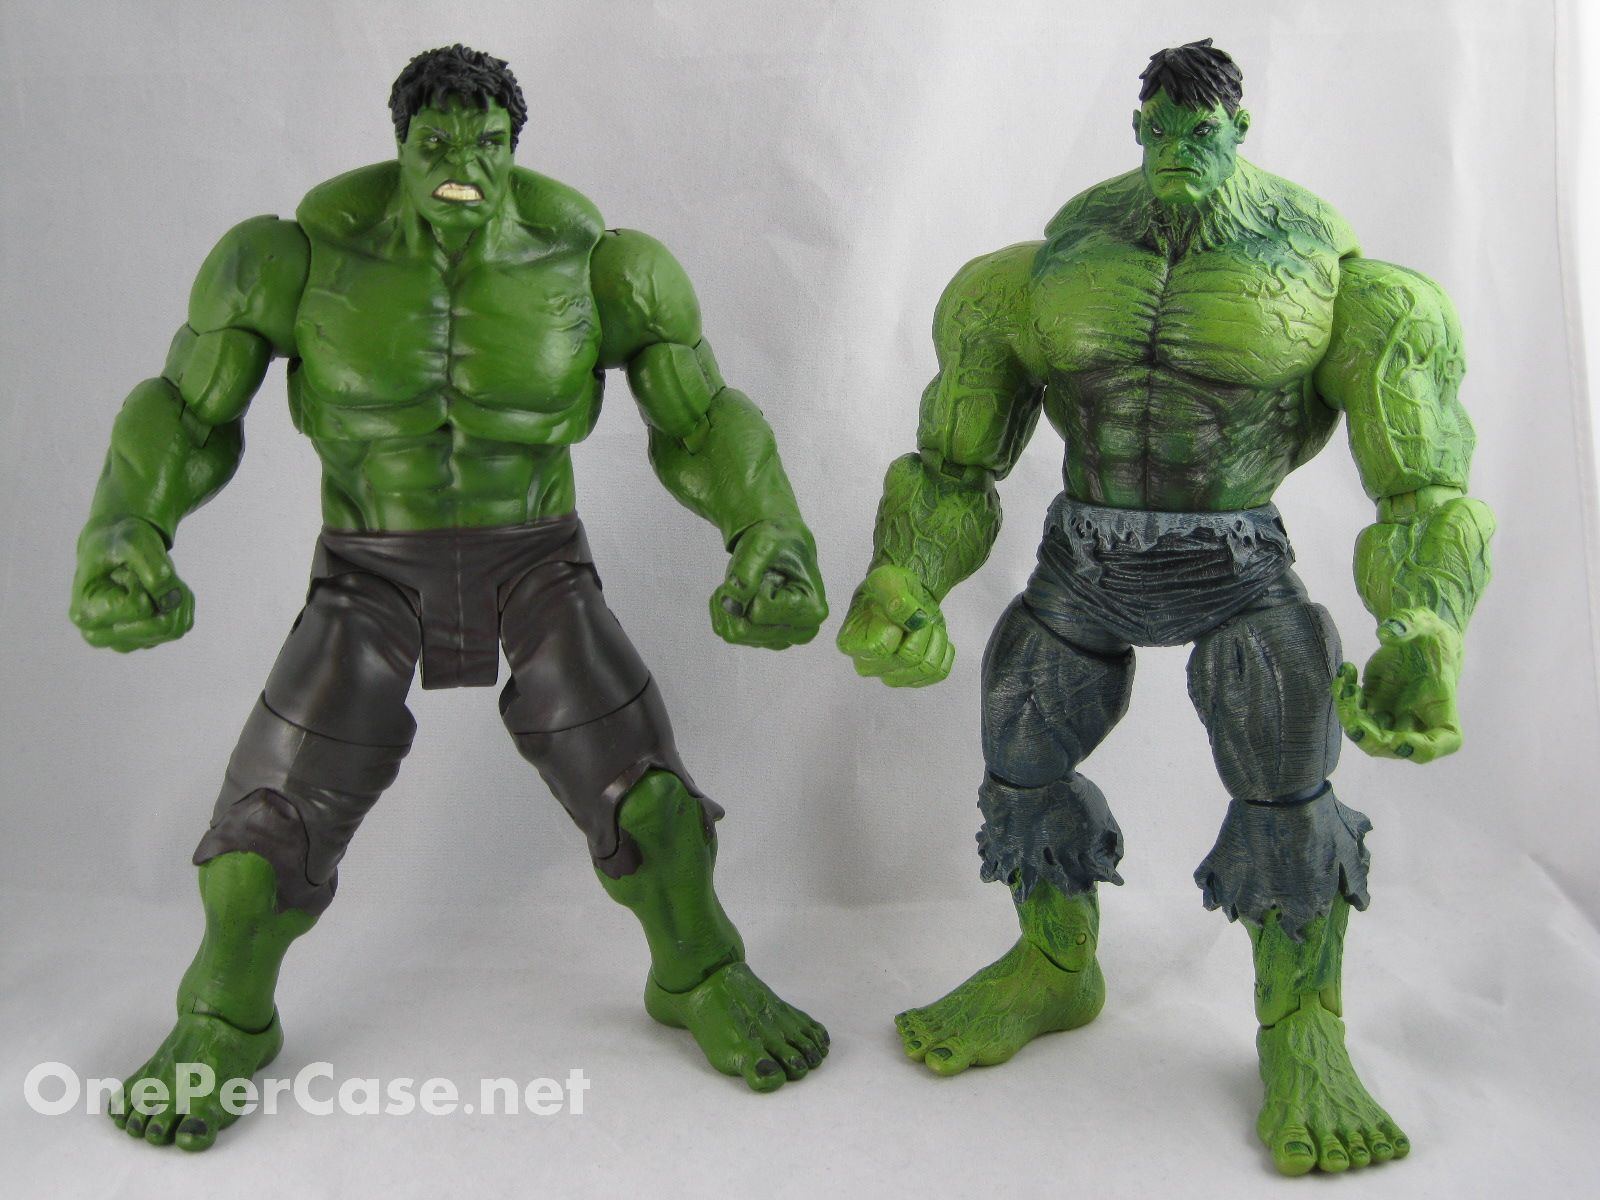 Marvel Legends Avengers Movie Hulk The Marvel Select Hulks Movie